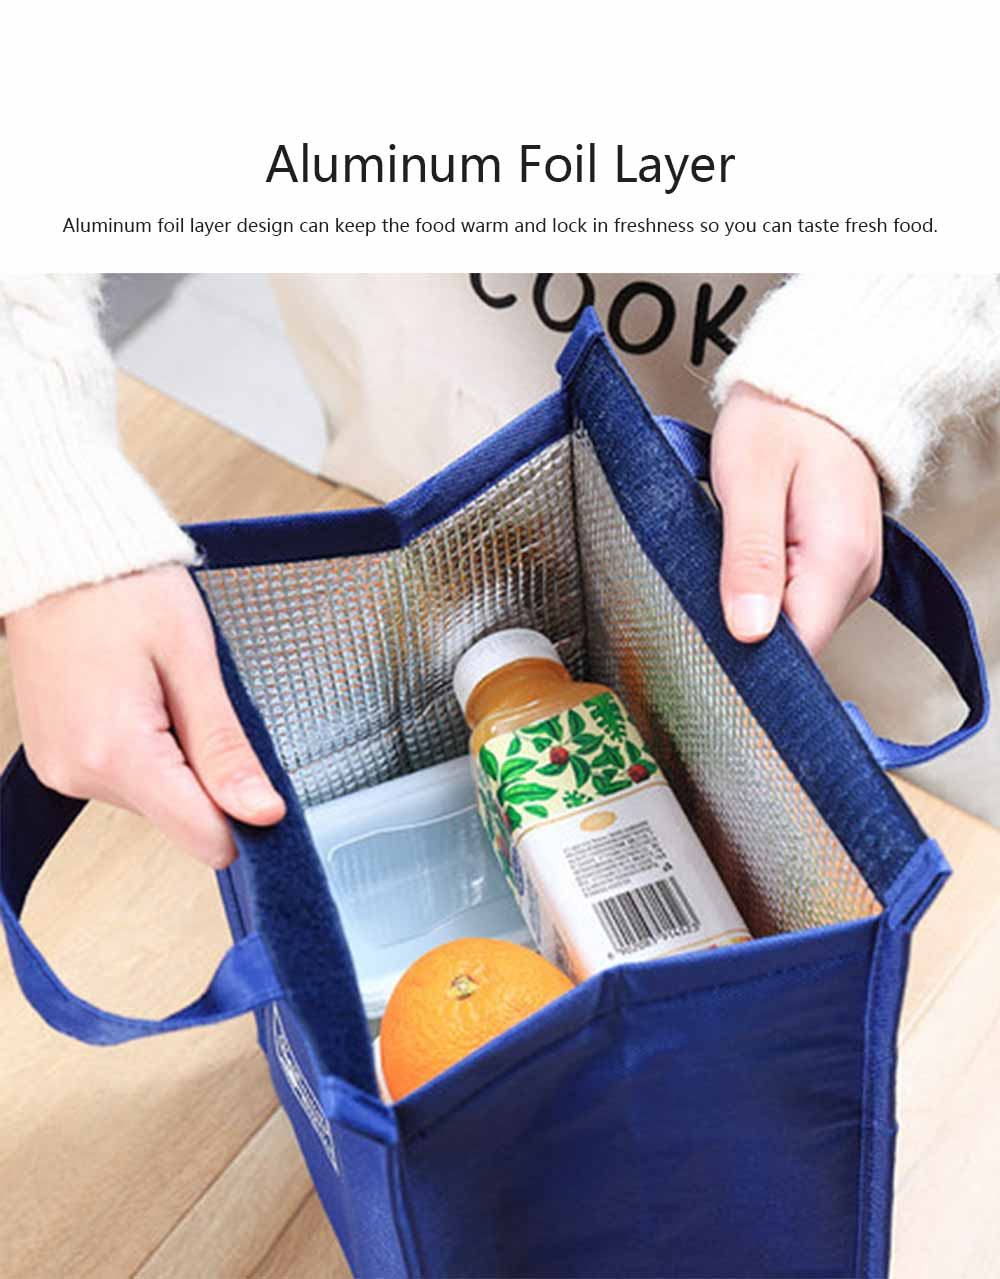 Lunch Box Handbag Water and Oil Proofing Aluminum Foil Layer Oxford Cloth Large Capacity Heat Preservation Bags 3